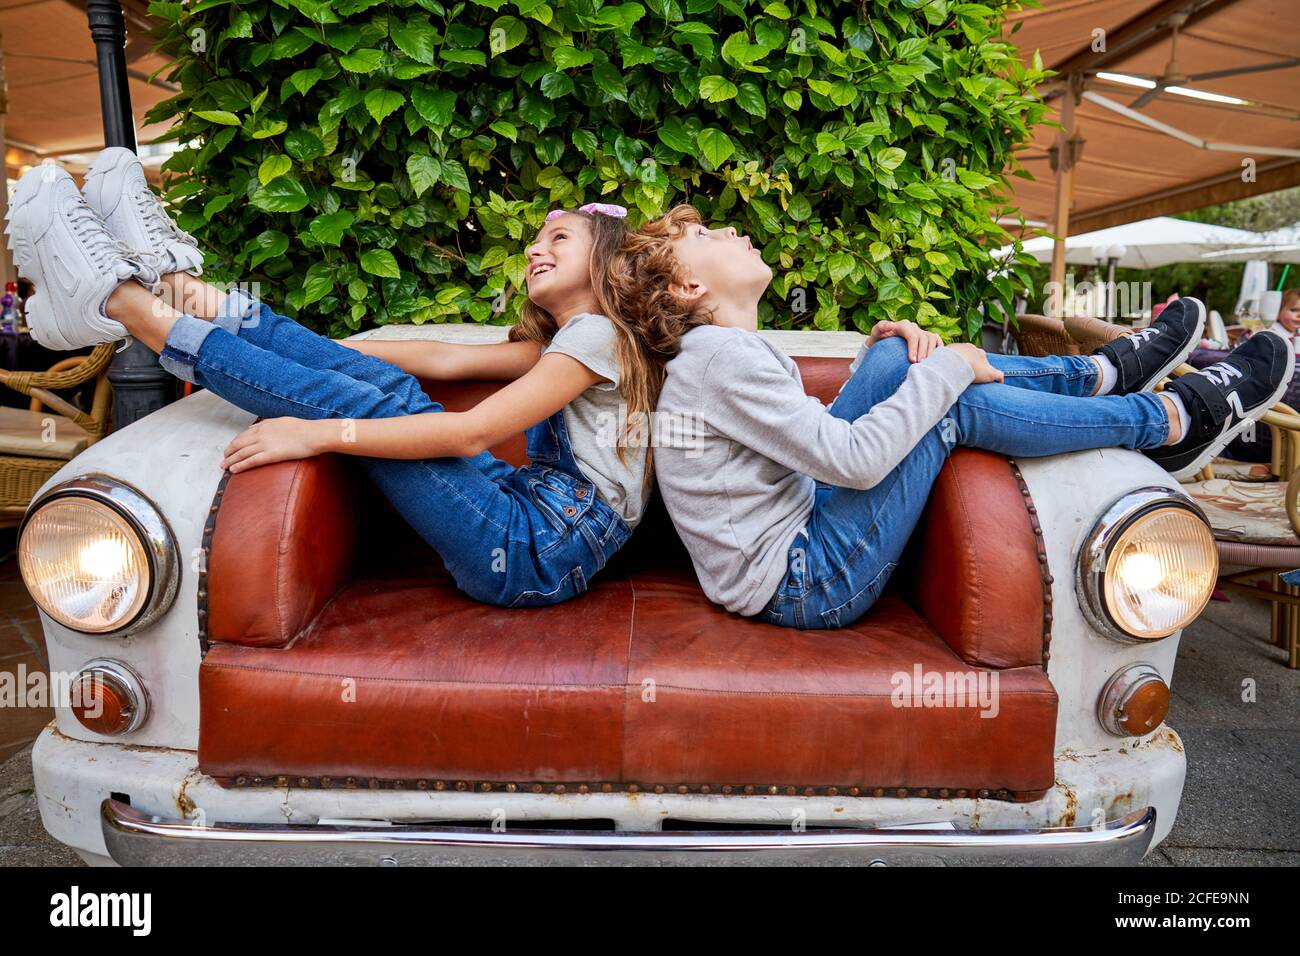 Side view of young lively children sitting back to back with legs up on car front converted into couch and looking upwards to ceiling while smiling and wondering Stock Photo